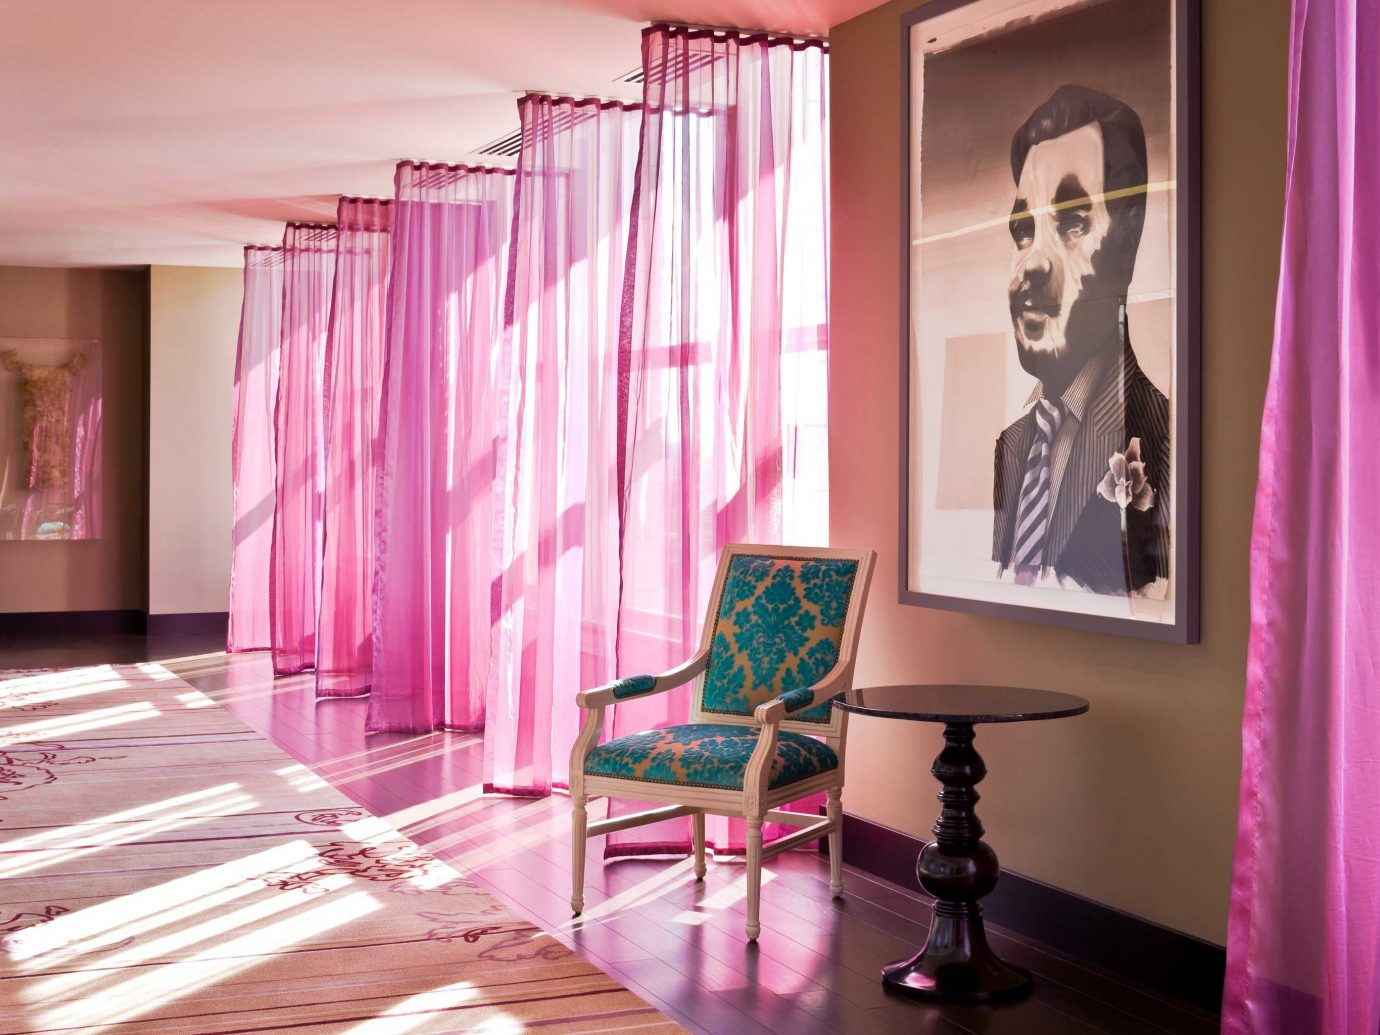 Hip Living Lounge Modern Travel Trends Trip Ideas curtain wall color indoor floor pink room interior design window covering window treatment living room purple furniture decorated colored